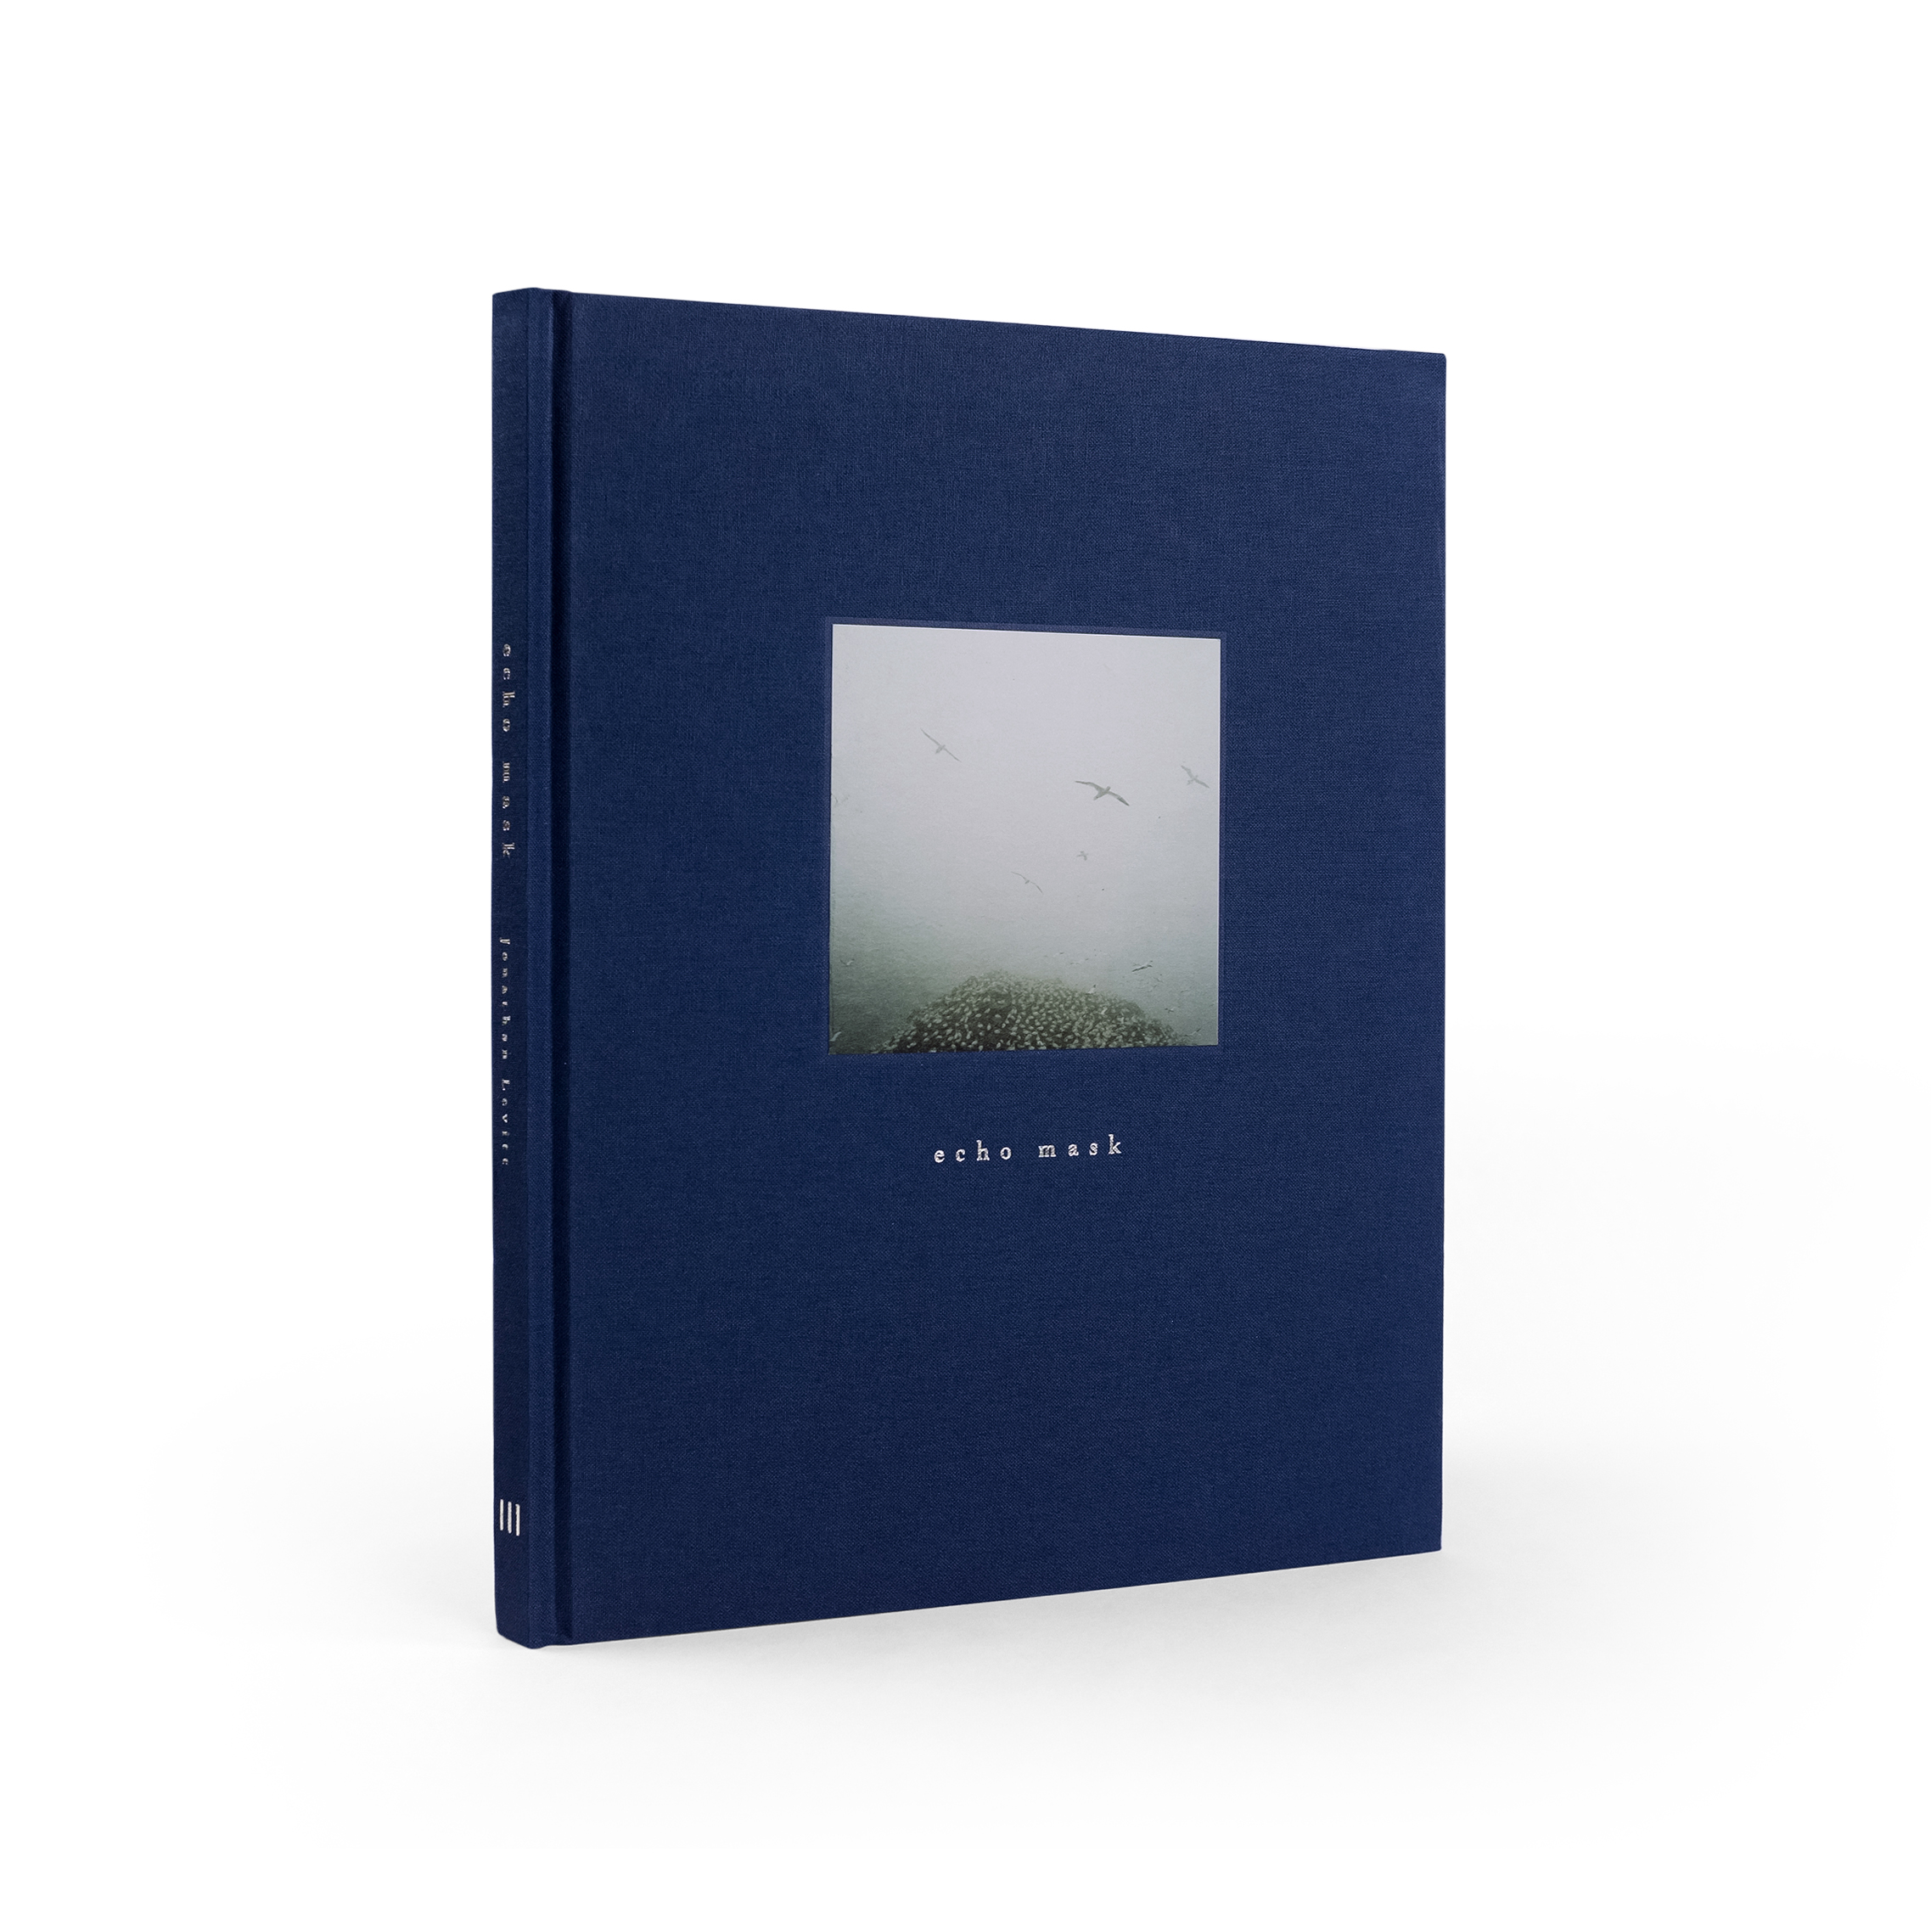 Pre-order - Inspired by natural history, mythology, animistic art and a primordial view of the natural world, Jonathan Levitt's Echo Mask is now available for pre-order.